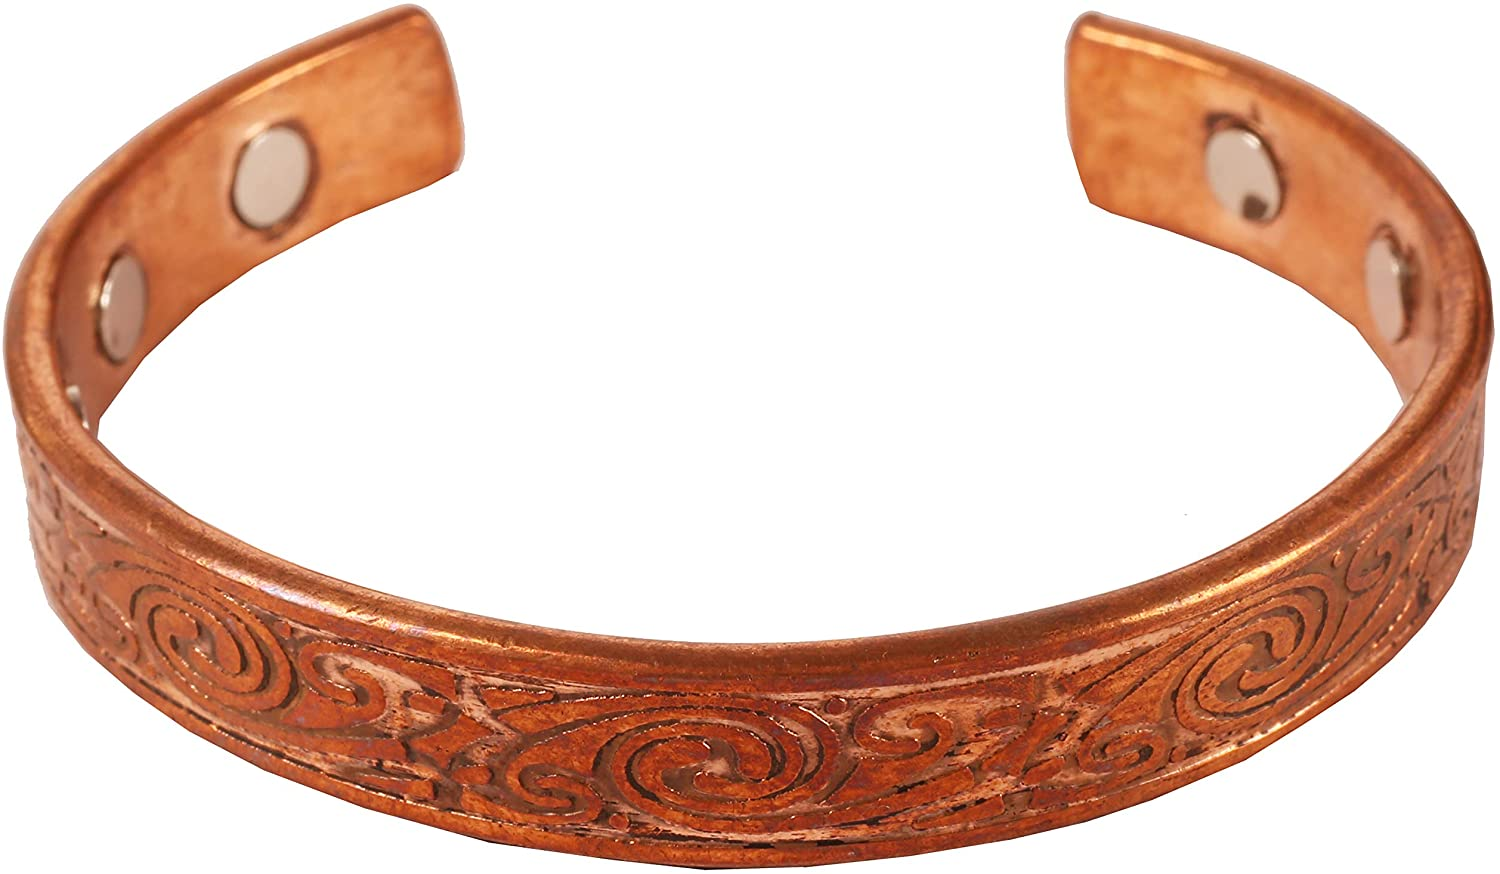 Touchstone Indian Beautifully Hammered Magnetic Healing Copper Peace Chakra Yoga Meditation Mantra Jewelry Bracelet for Women and Men.